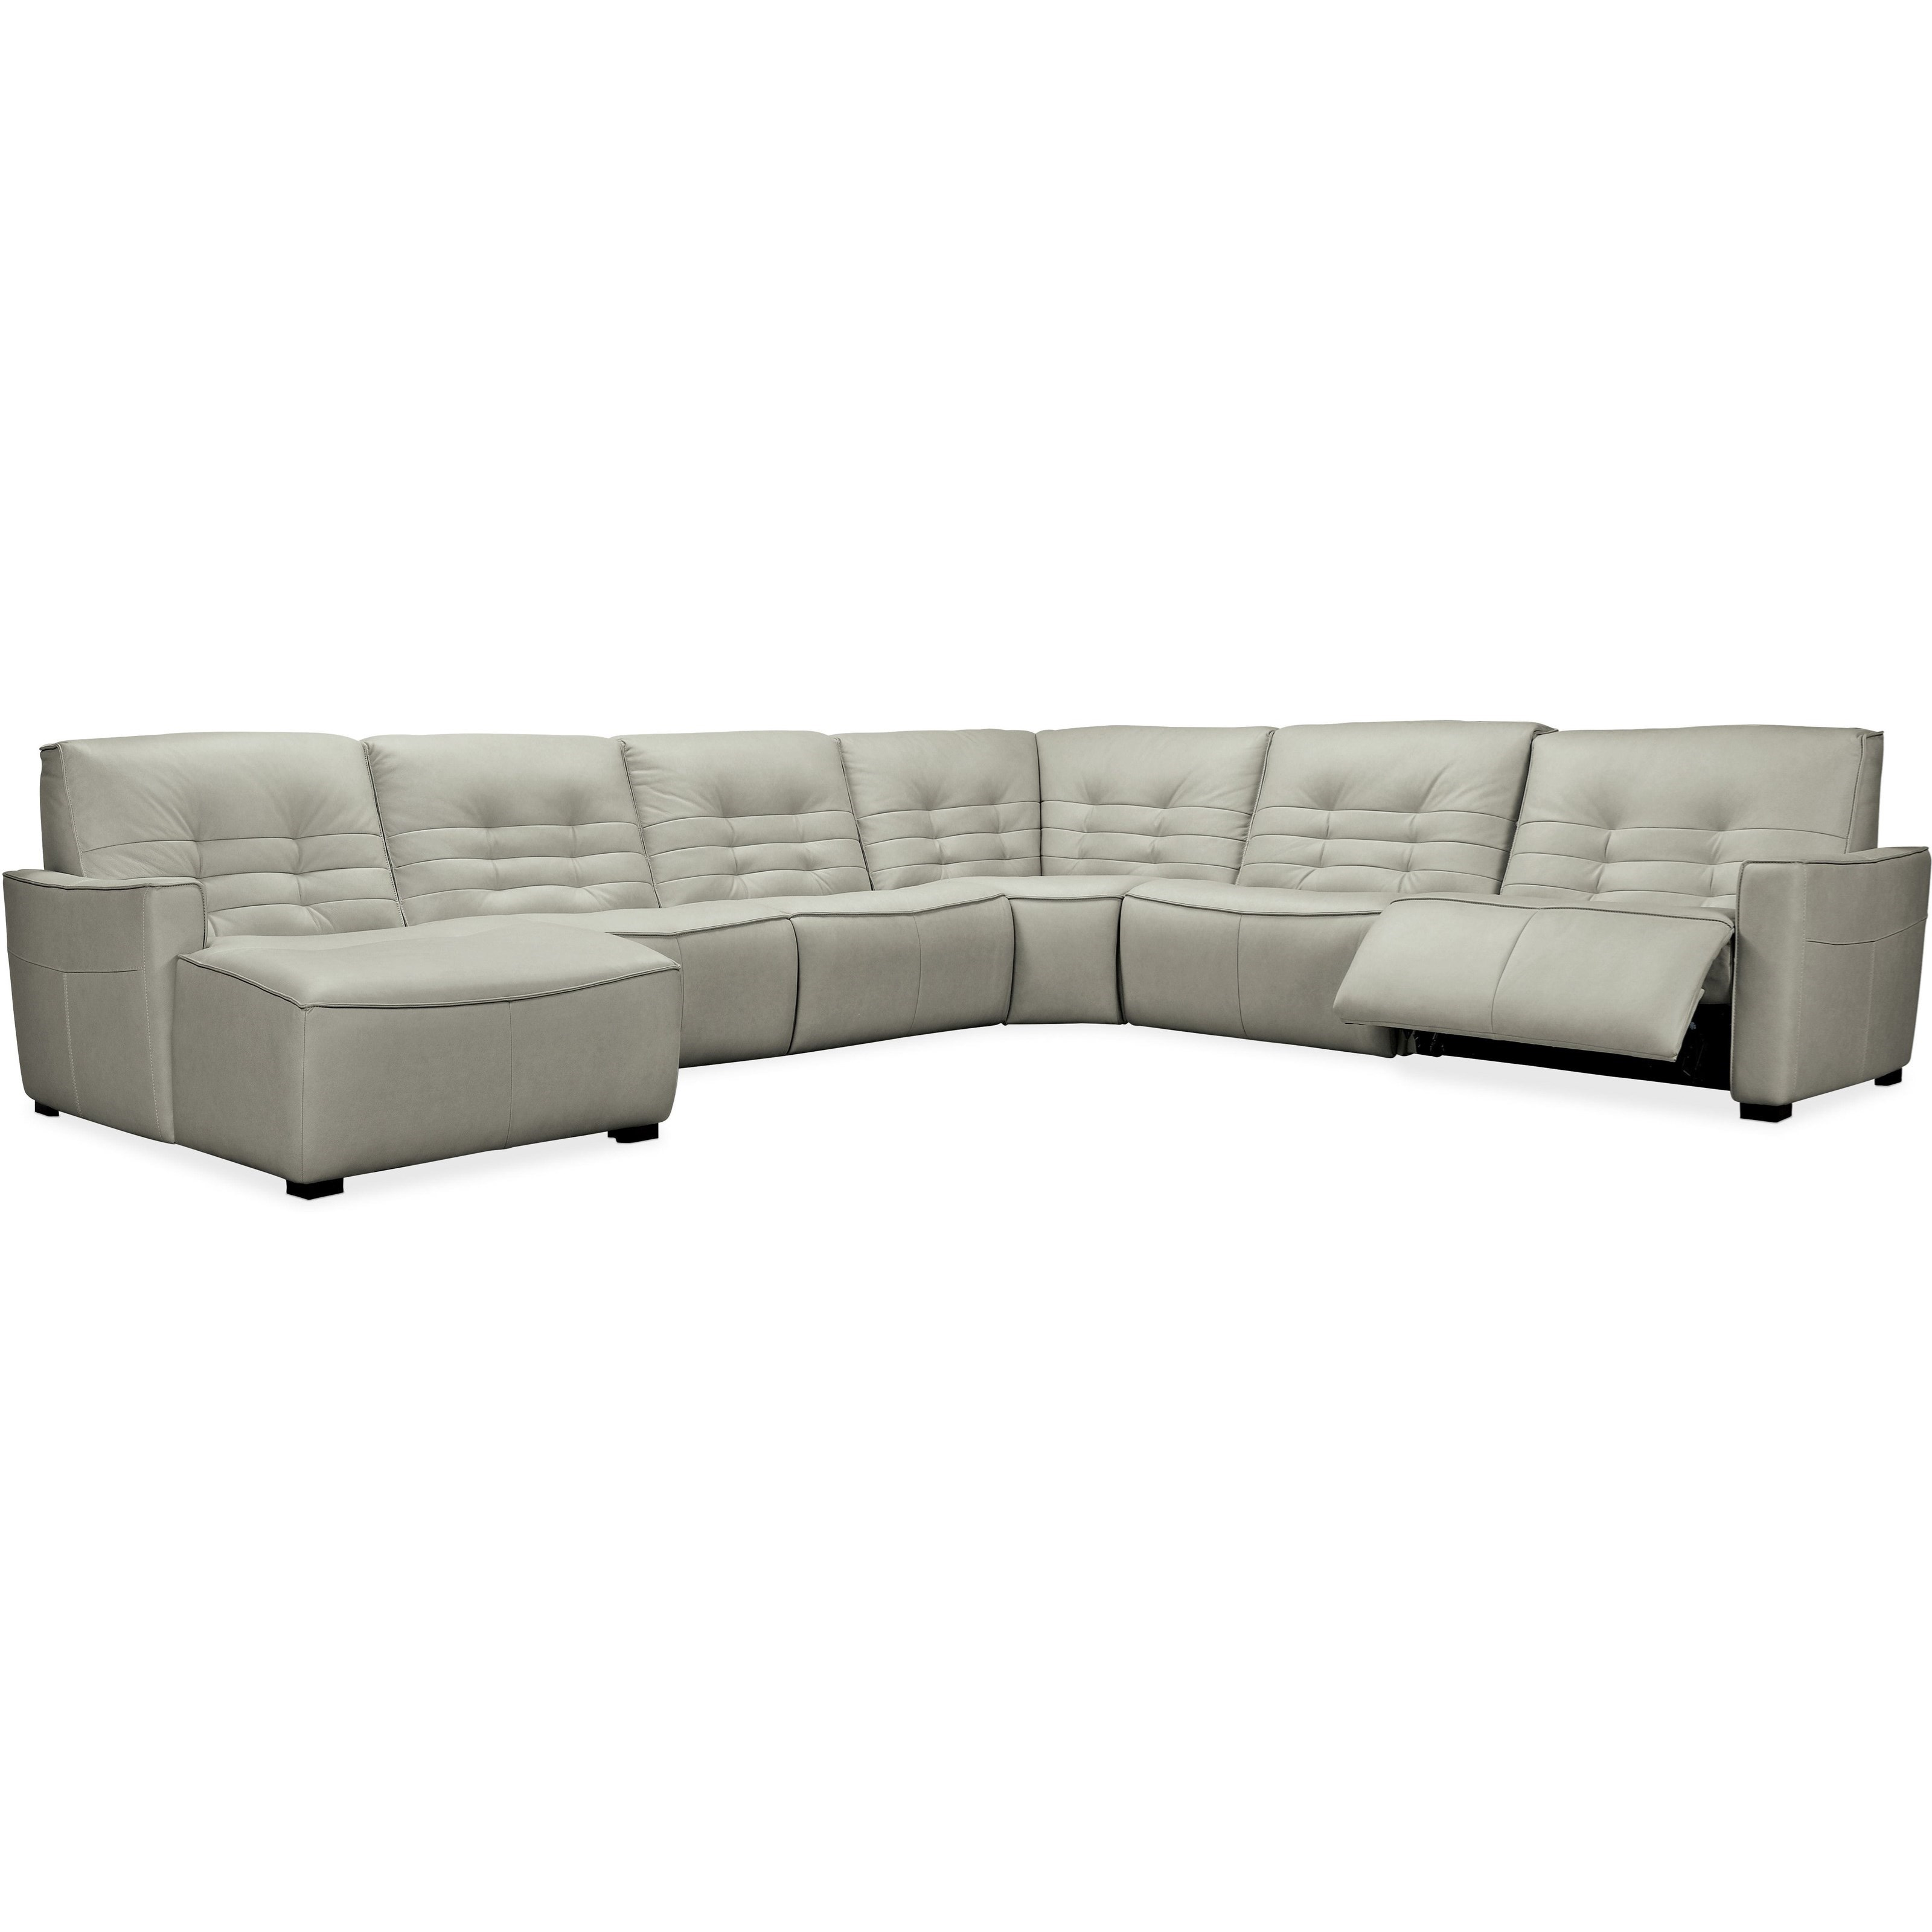 Reaux 6-Piece Power Sectional with LAF Chaise by Hooker Furniture at Alison Craig Home Furnishings